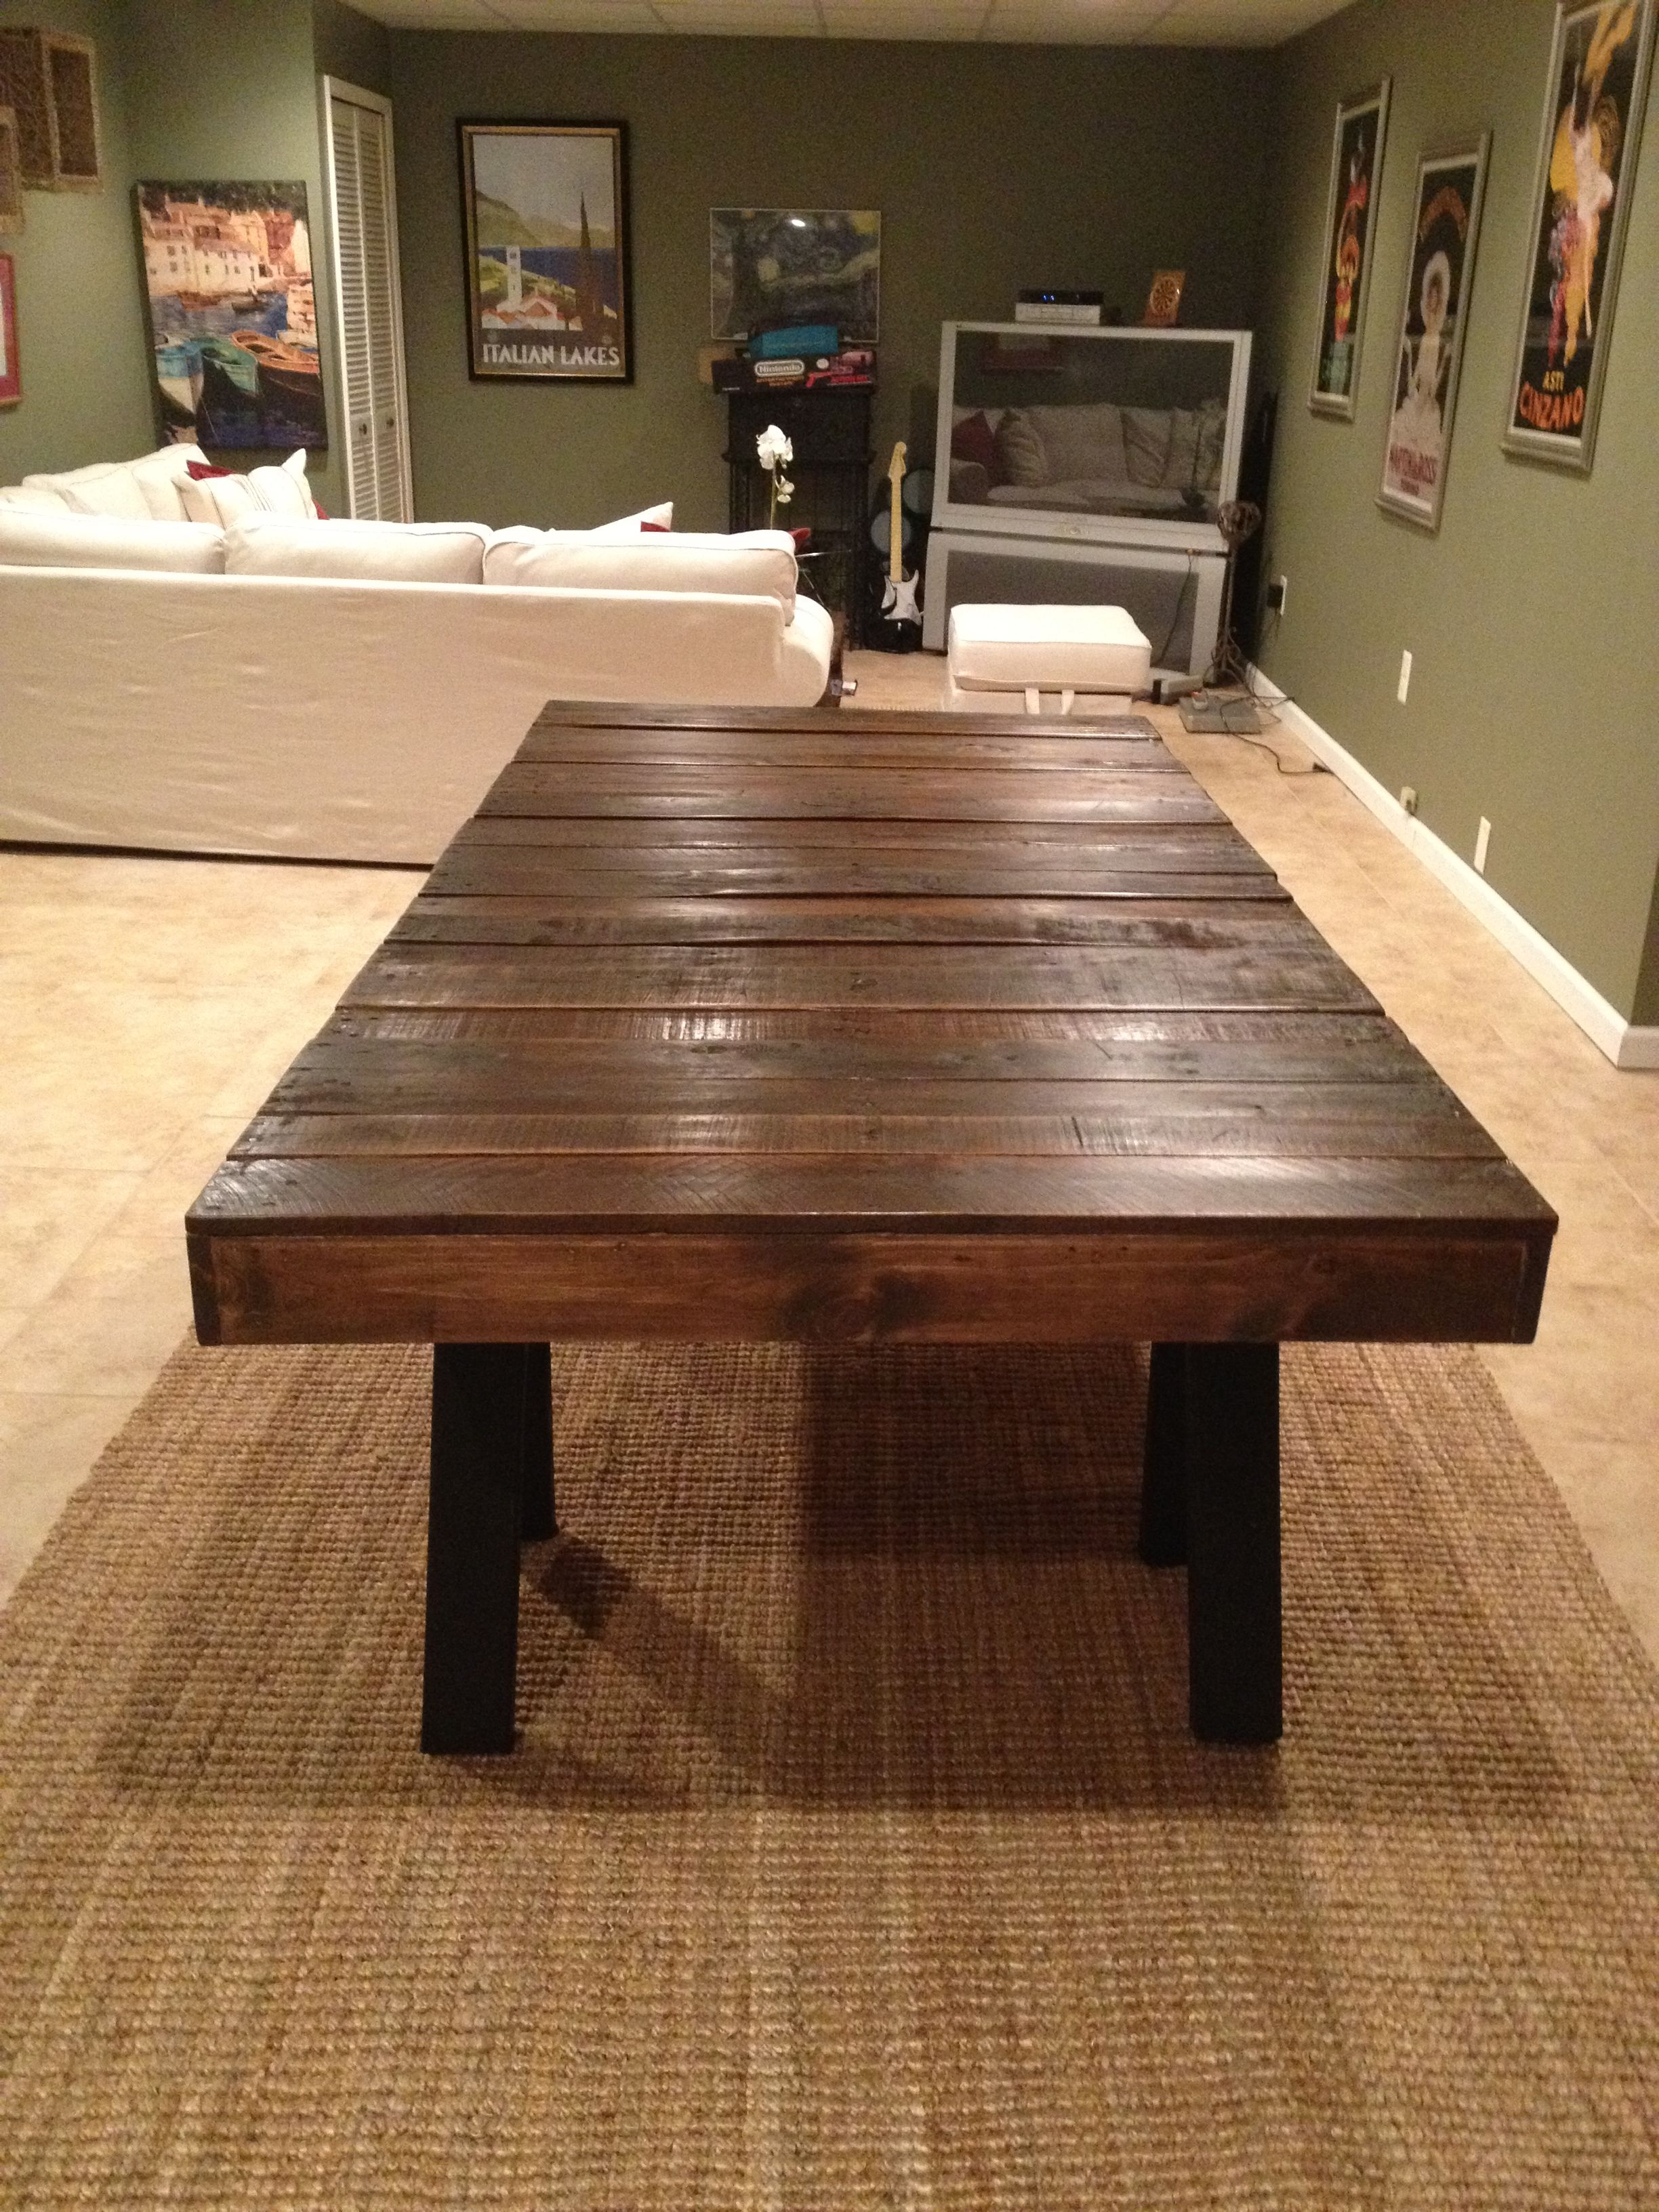 dining room table made from pallets | Pallet dining table | Furniture I want to make | Pinterest ...